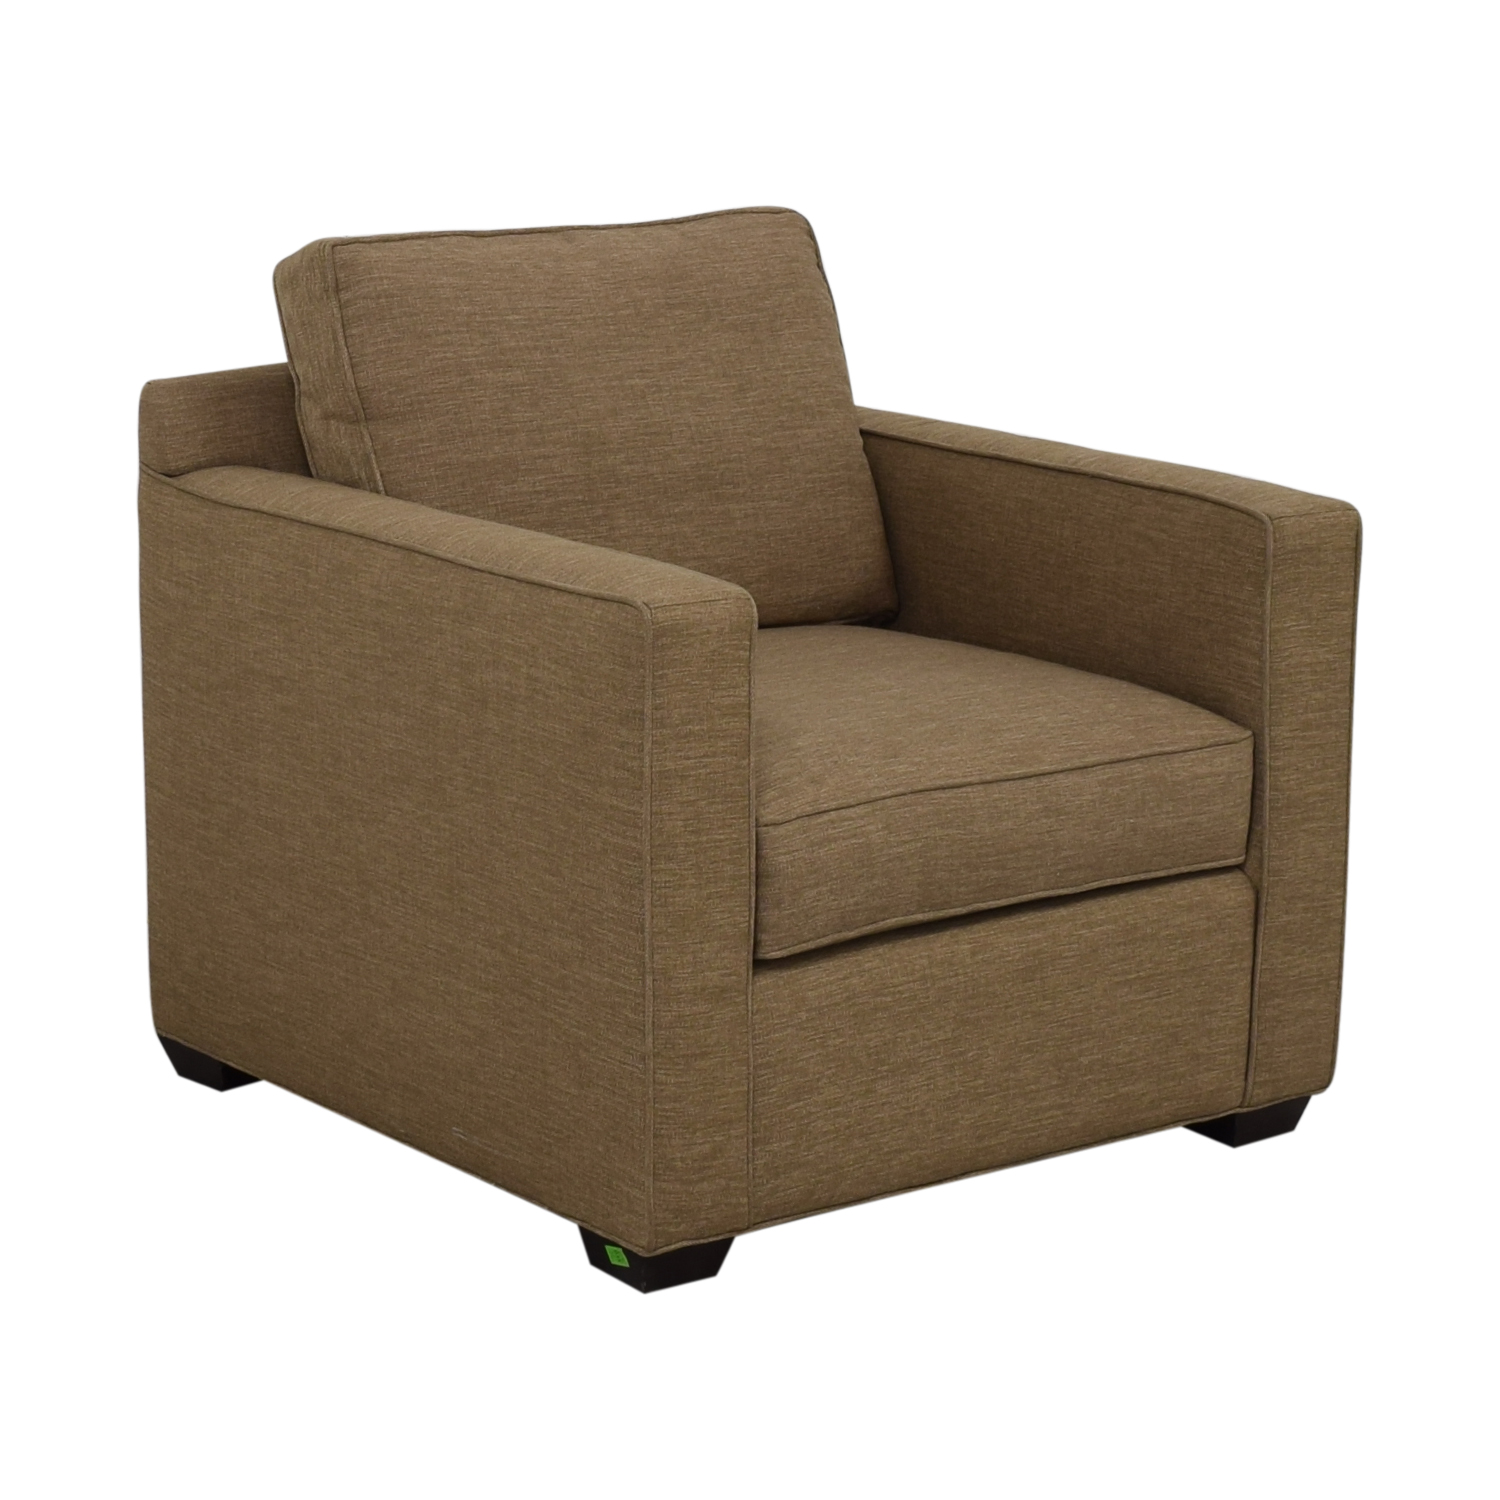 buy Crate & Barrel Davis Armchair Crate & Barrel